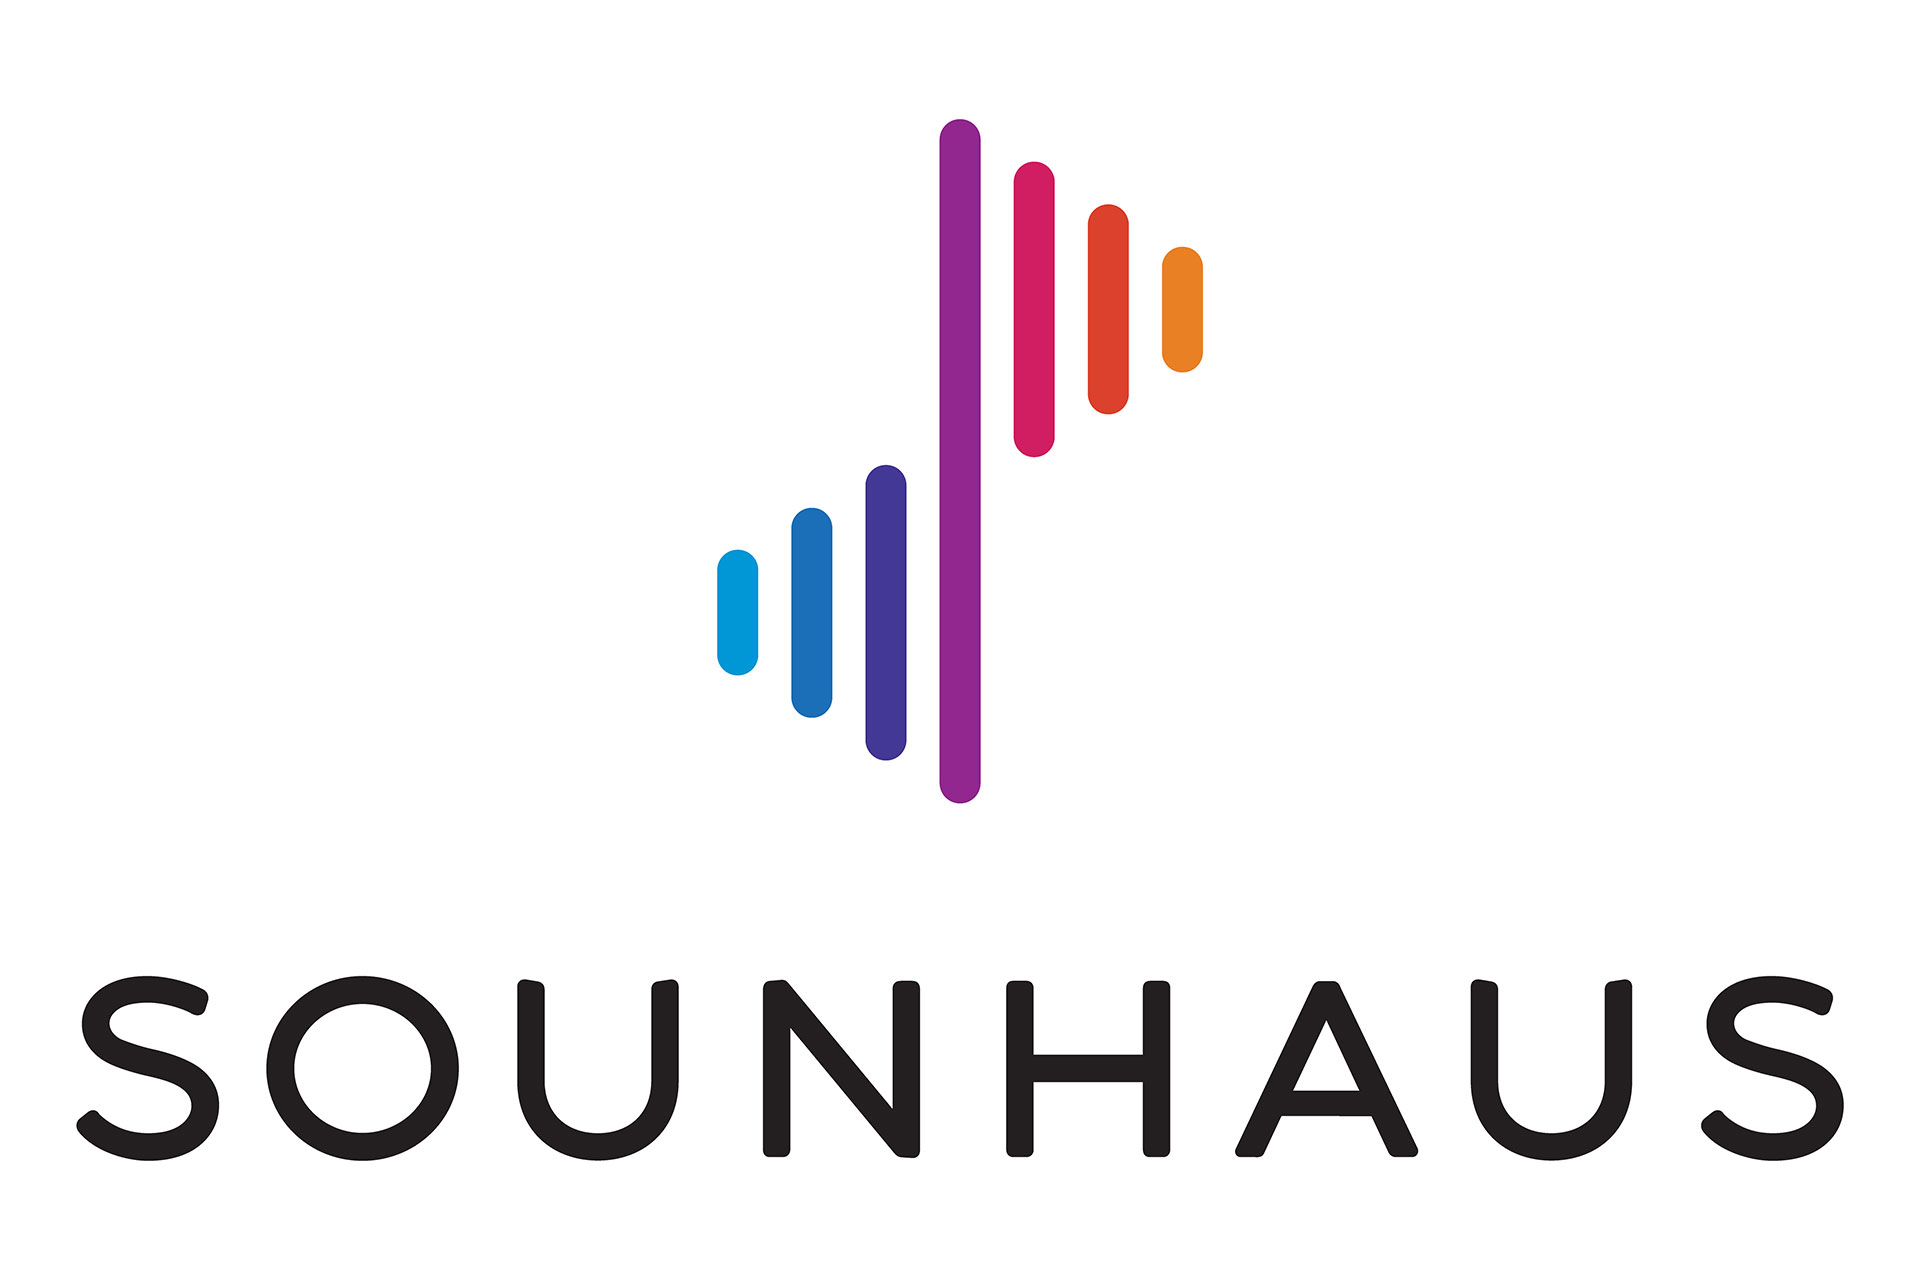 Sounhaus Graphis 2020